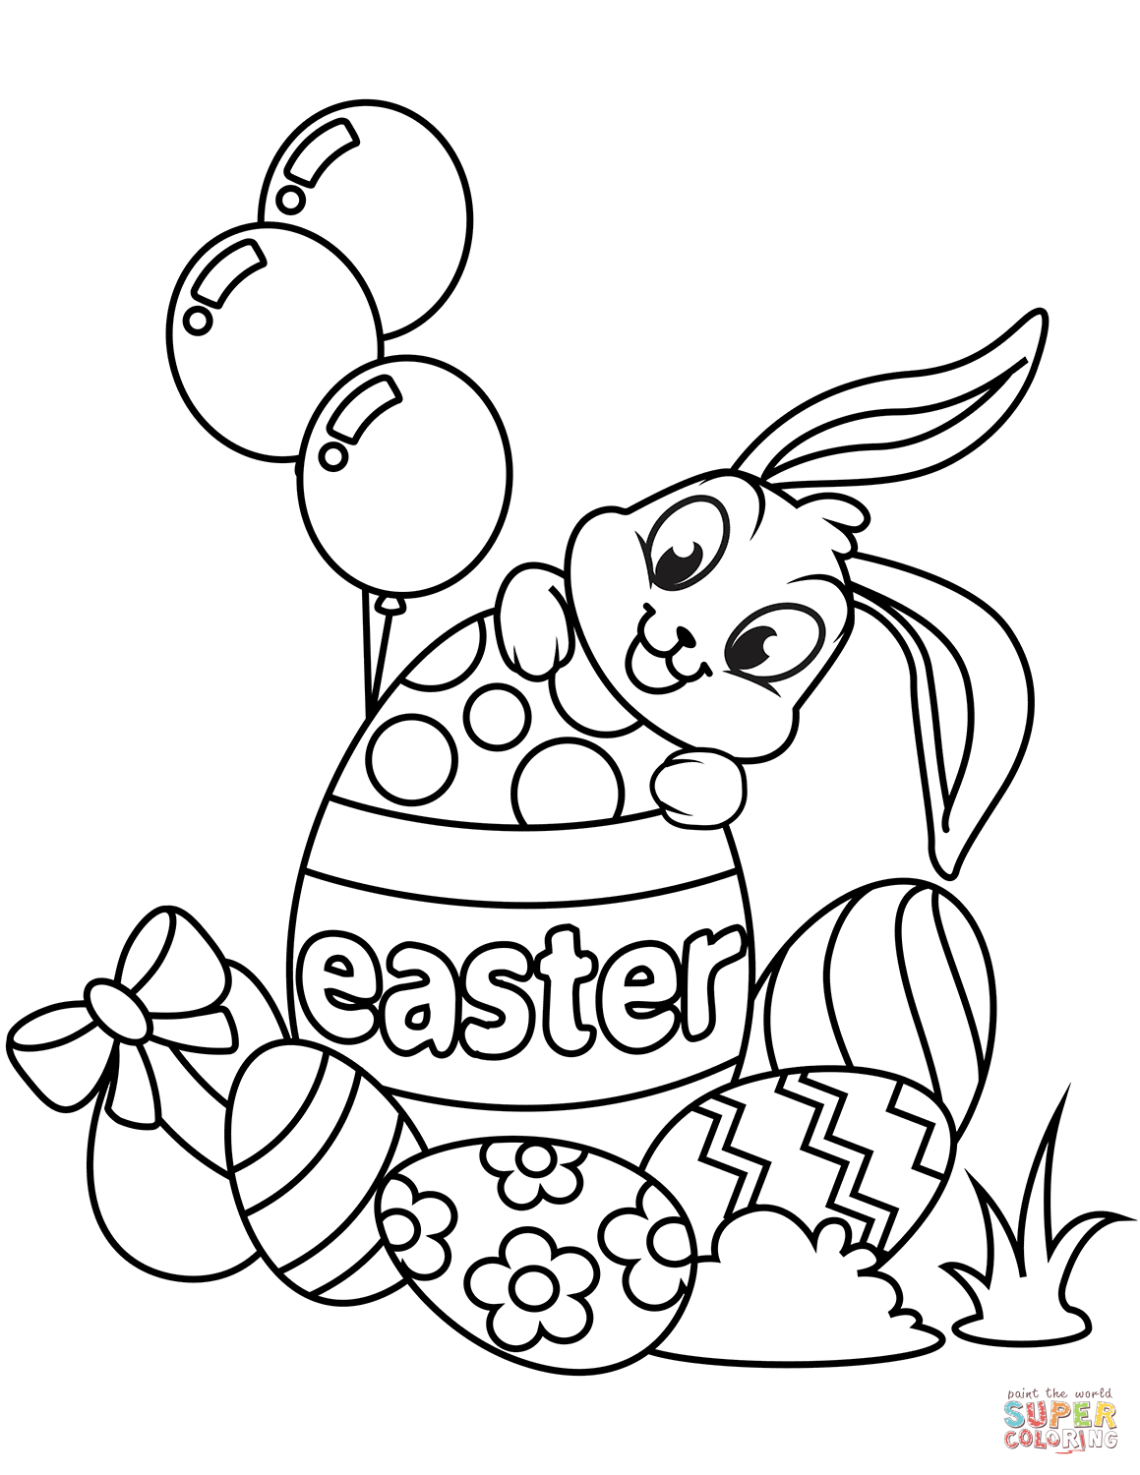 Cute Easter Bunny and Eggs coloring page | Free Printable ... | coloring sheets easter printables